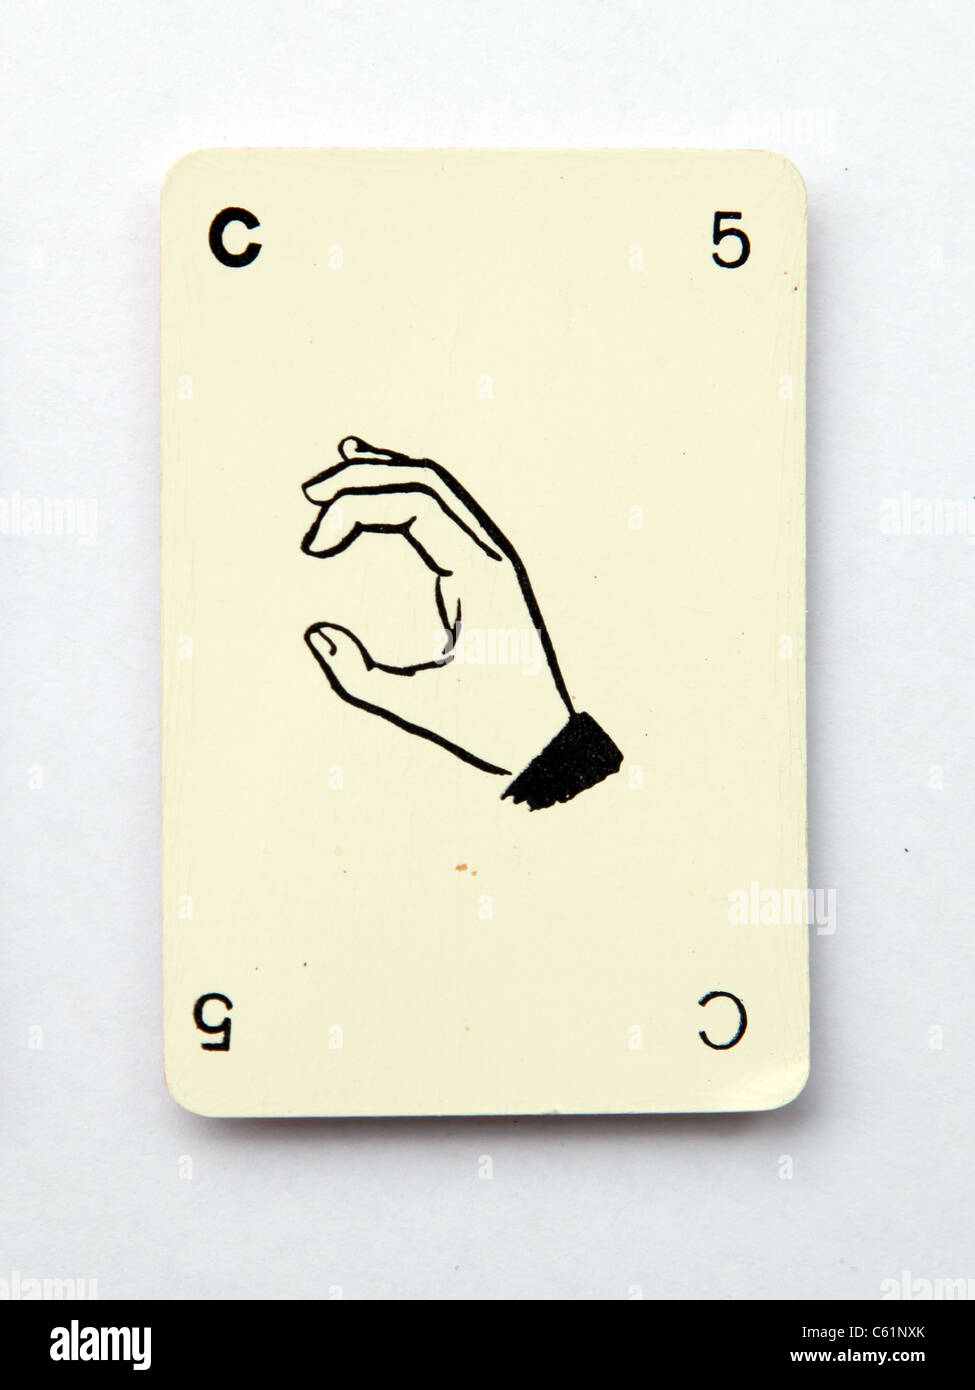 The letter c spelt on an old playing card from the 1960s,  'Kan-U-Go' - Stock Image